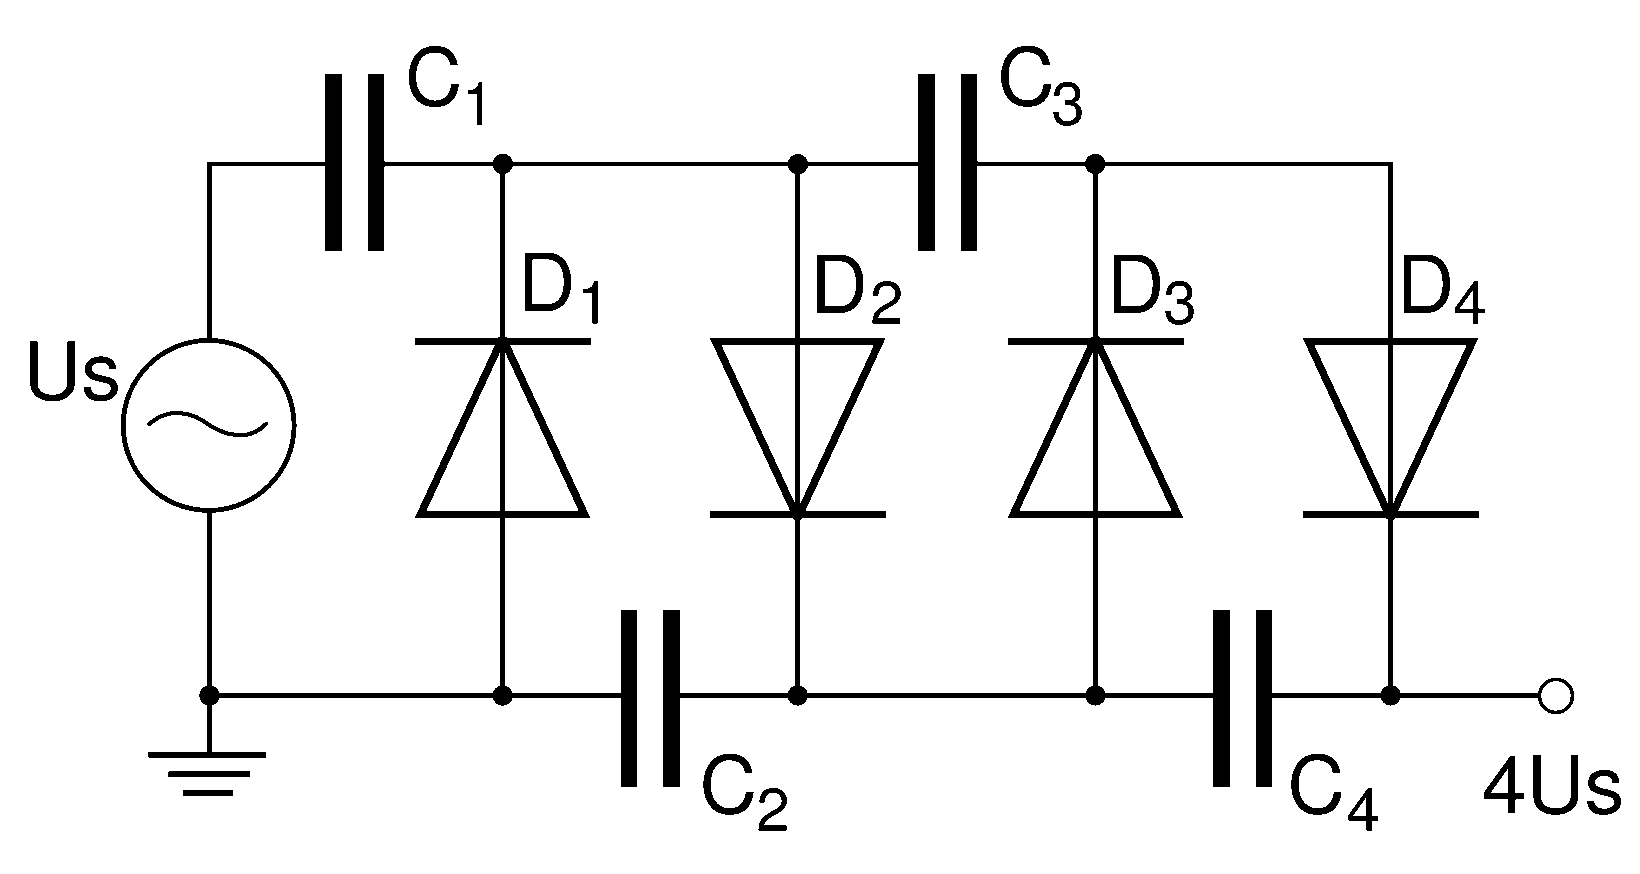 Voltage Multiplier Wikipedia Full Wave Rectifier Connection Diagram